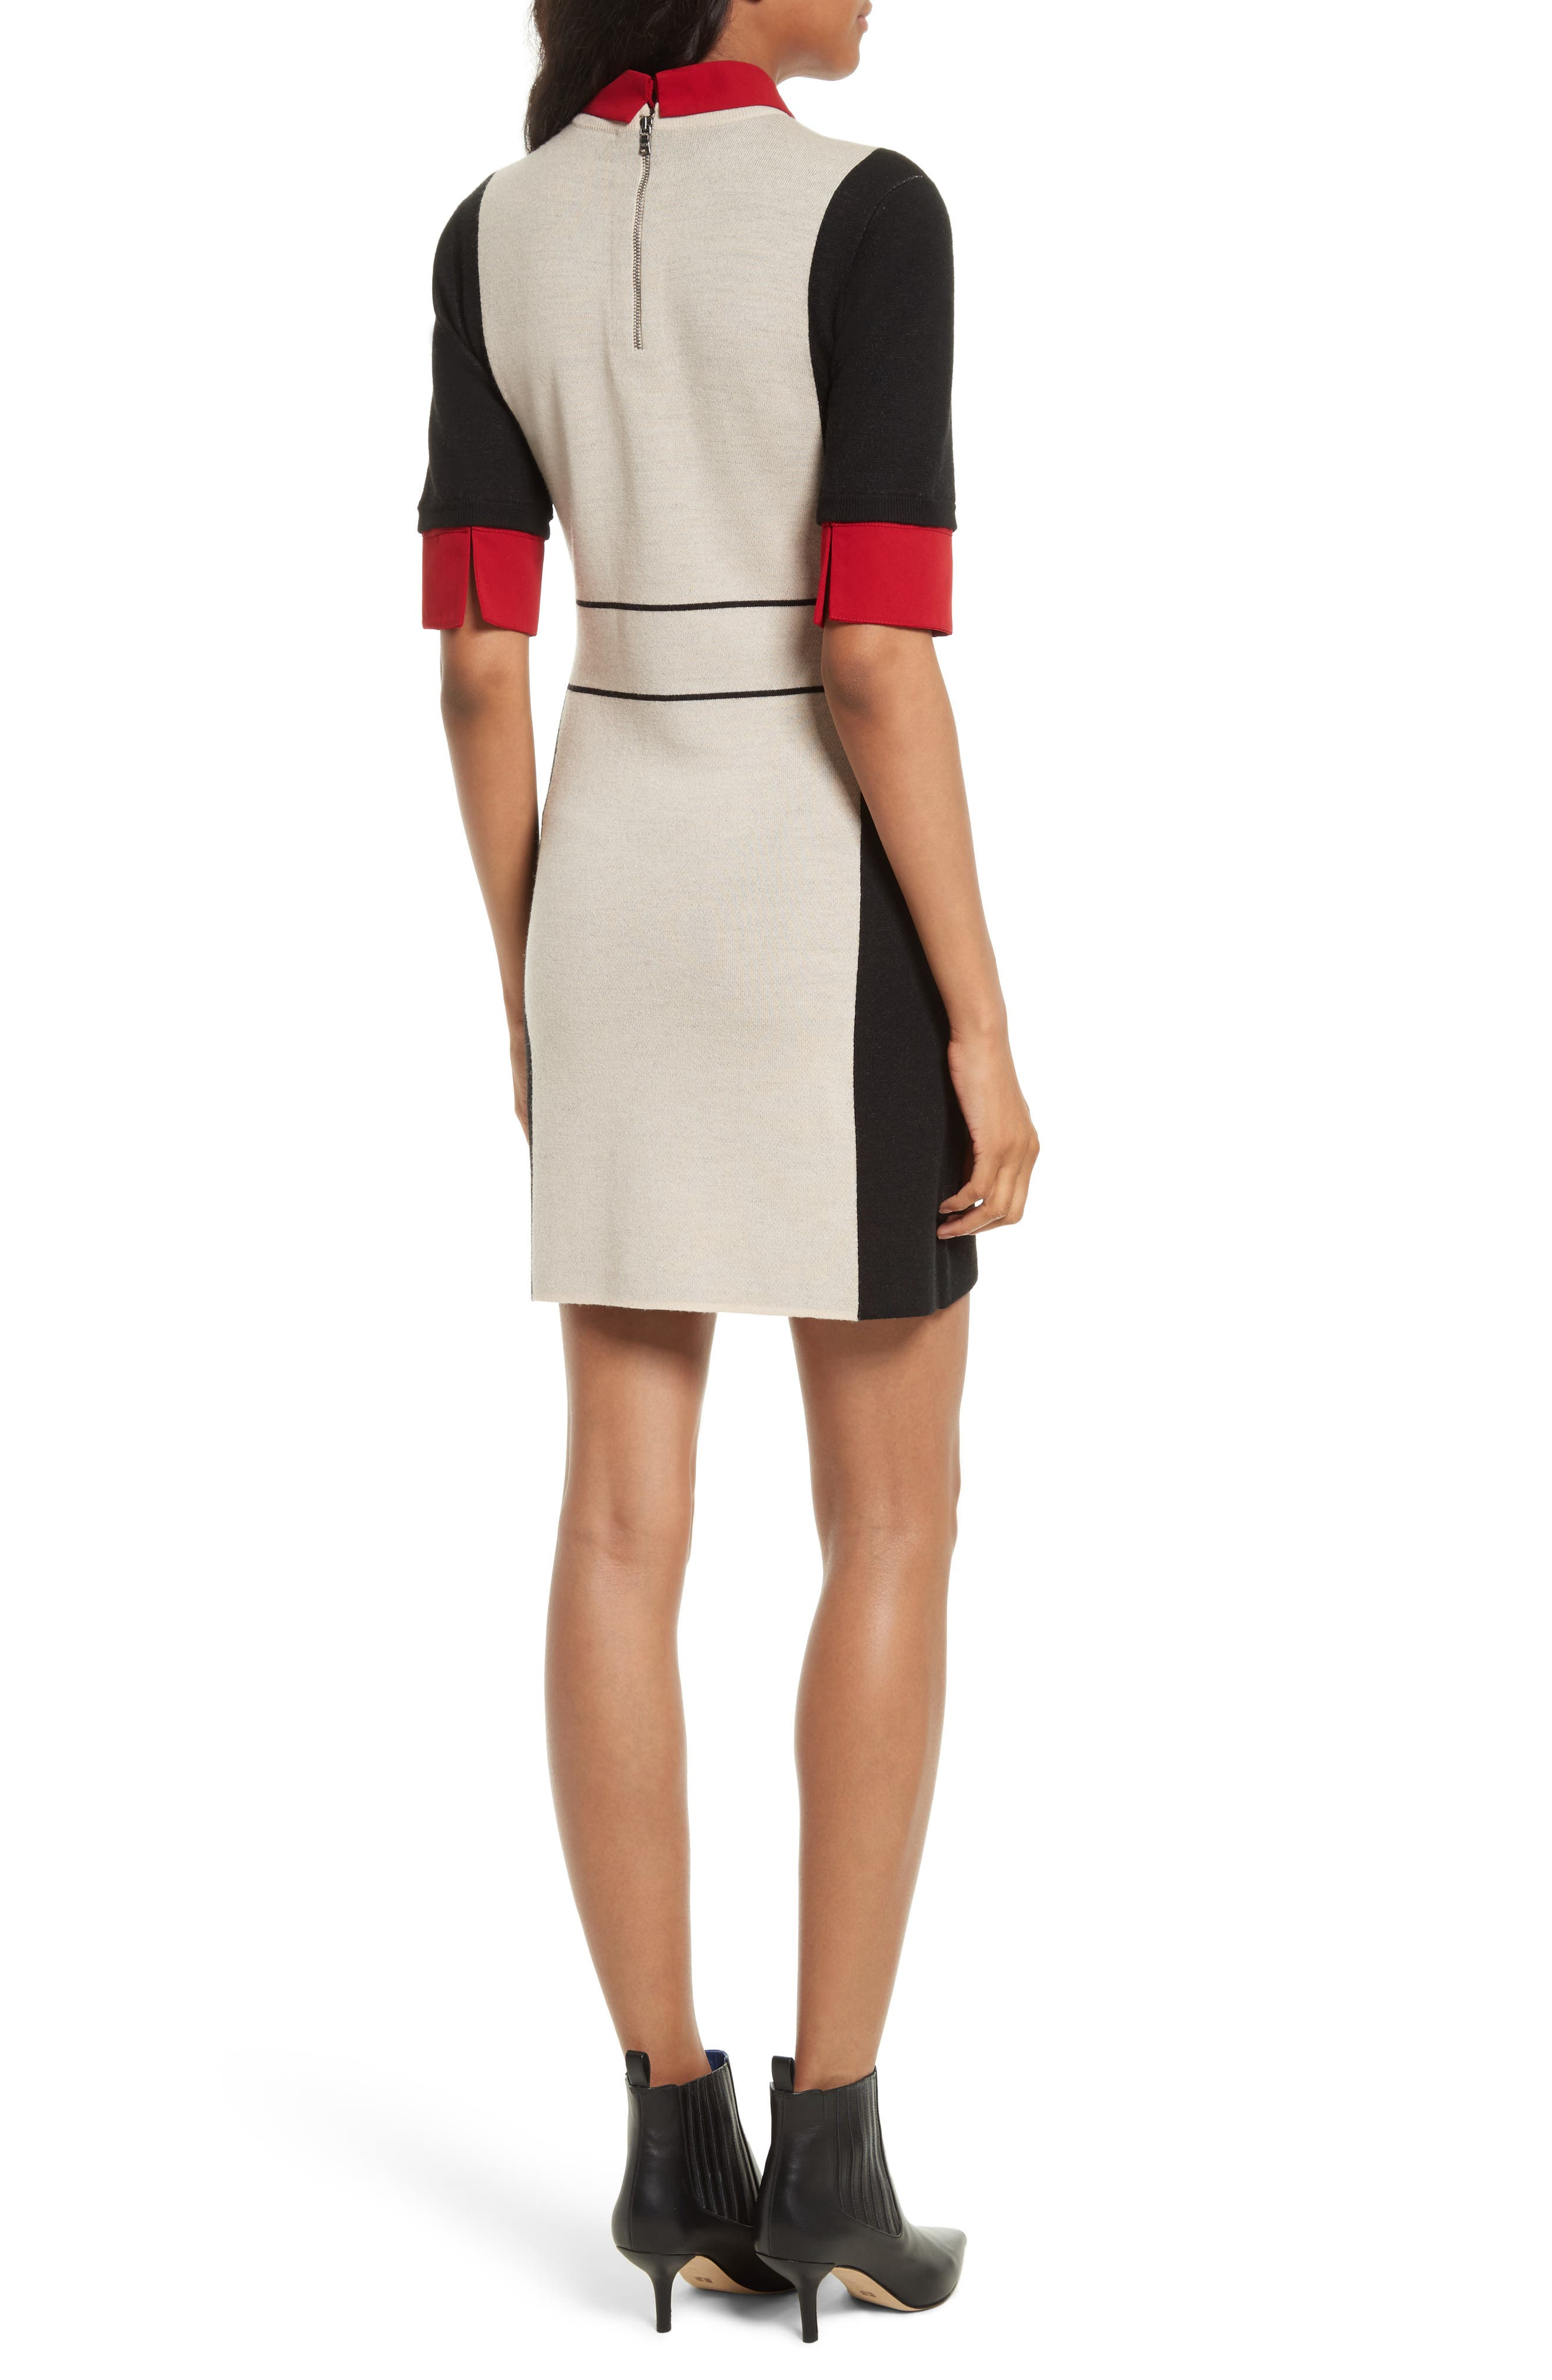 Mia Contrast Trim Sweater Dress,                             Alternate thumbnail 2, color,                             Black/ Natural/ Red